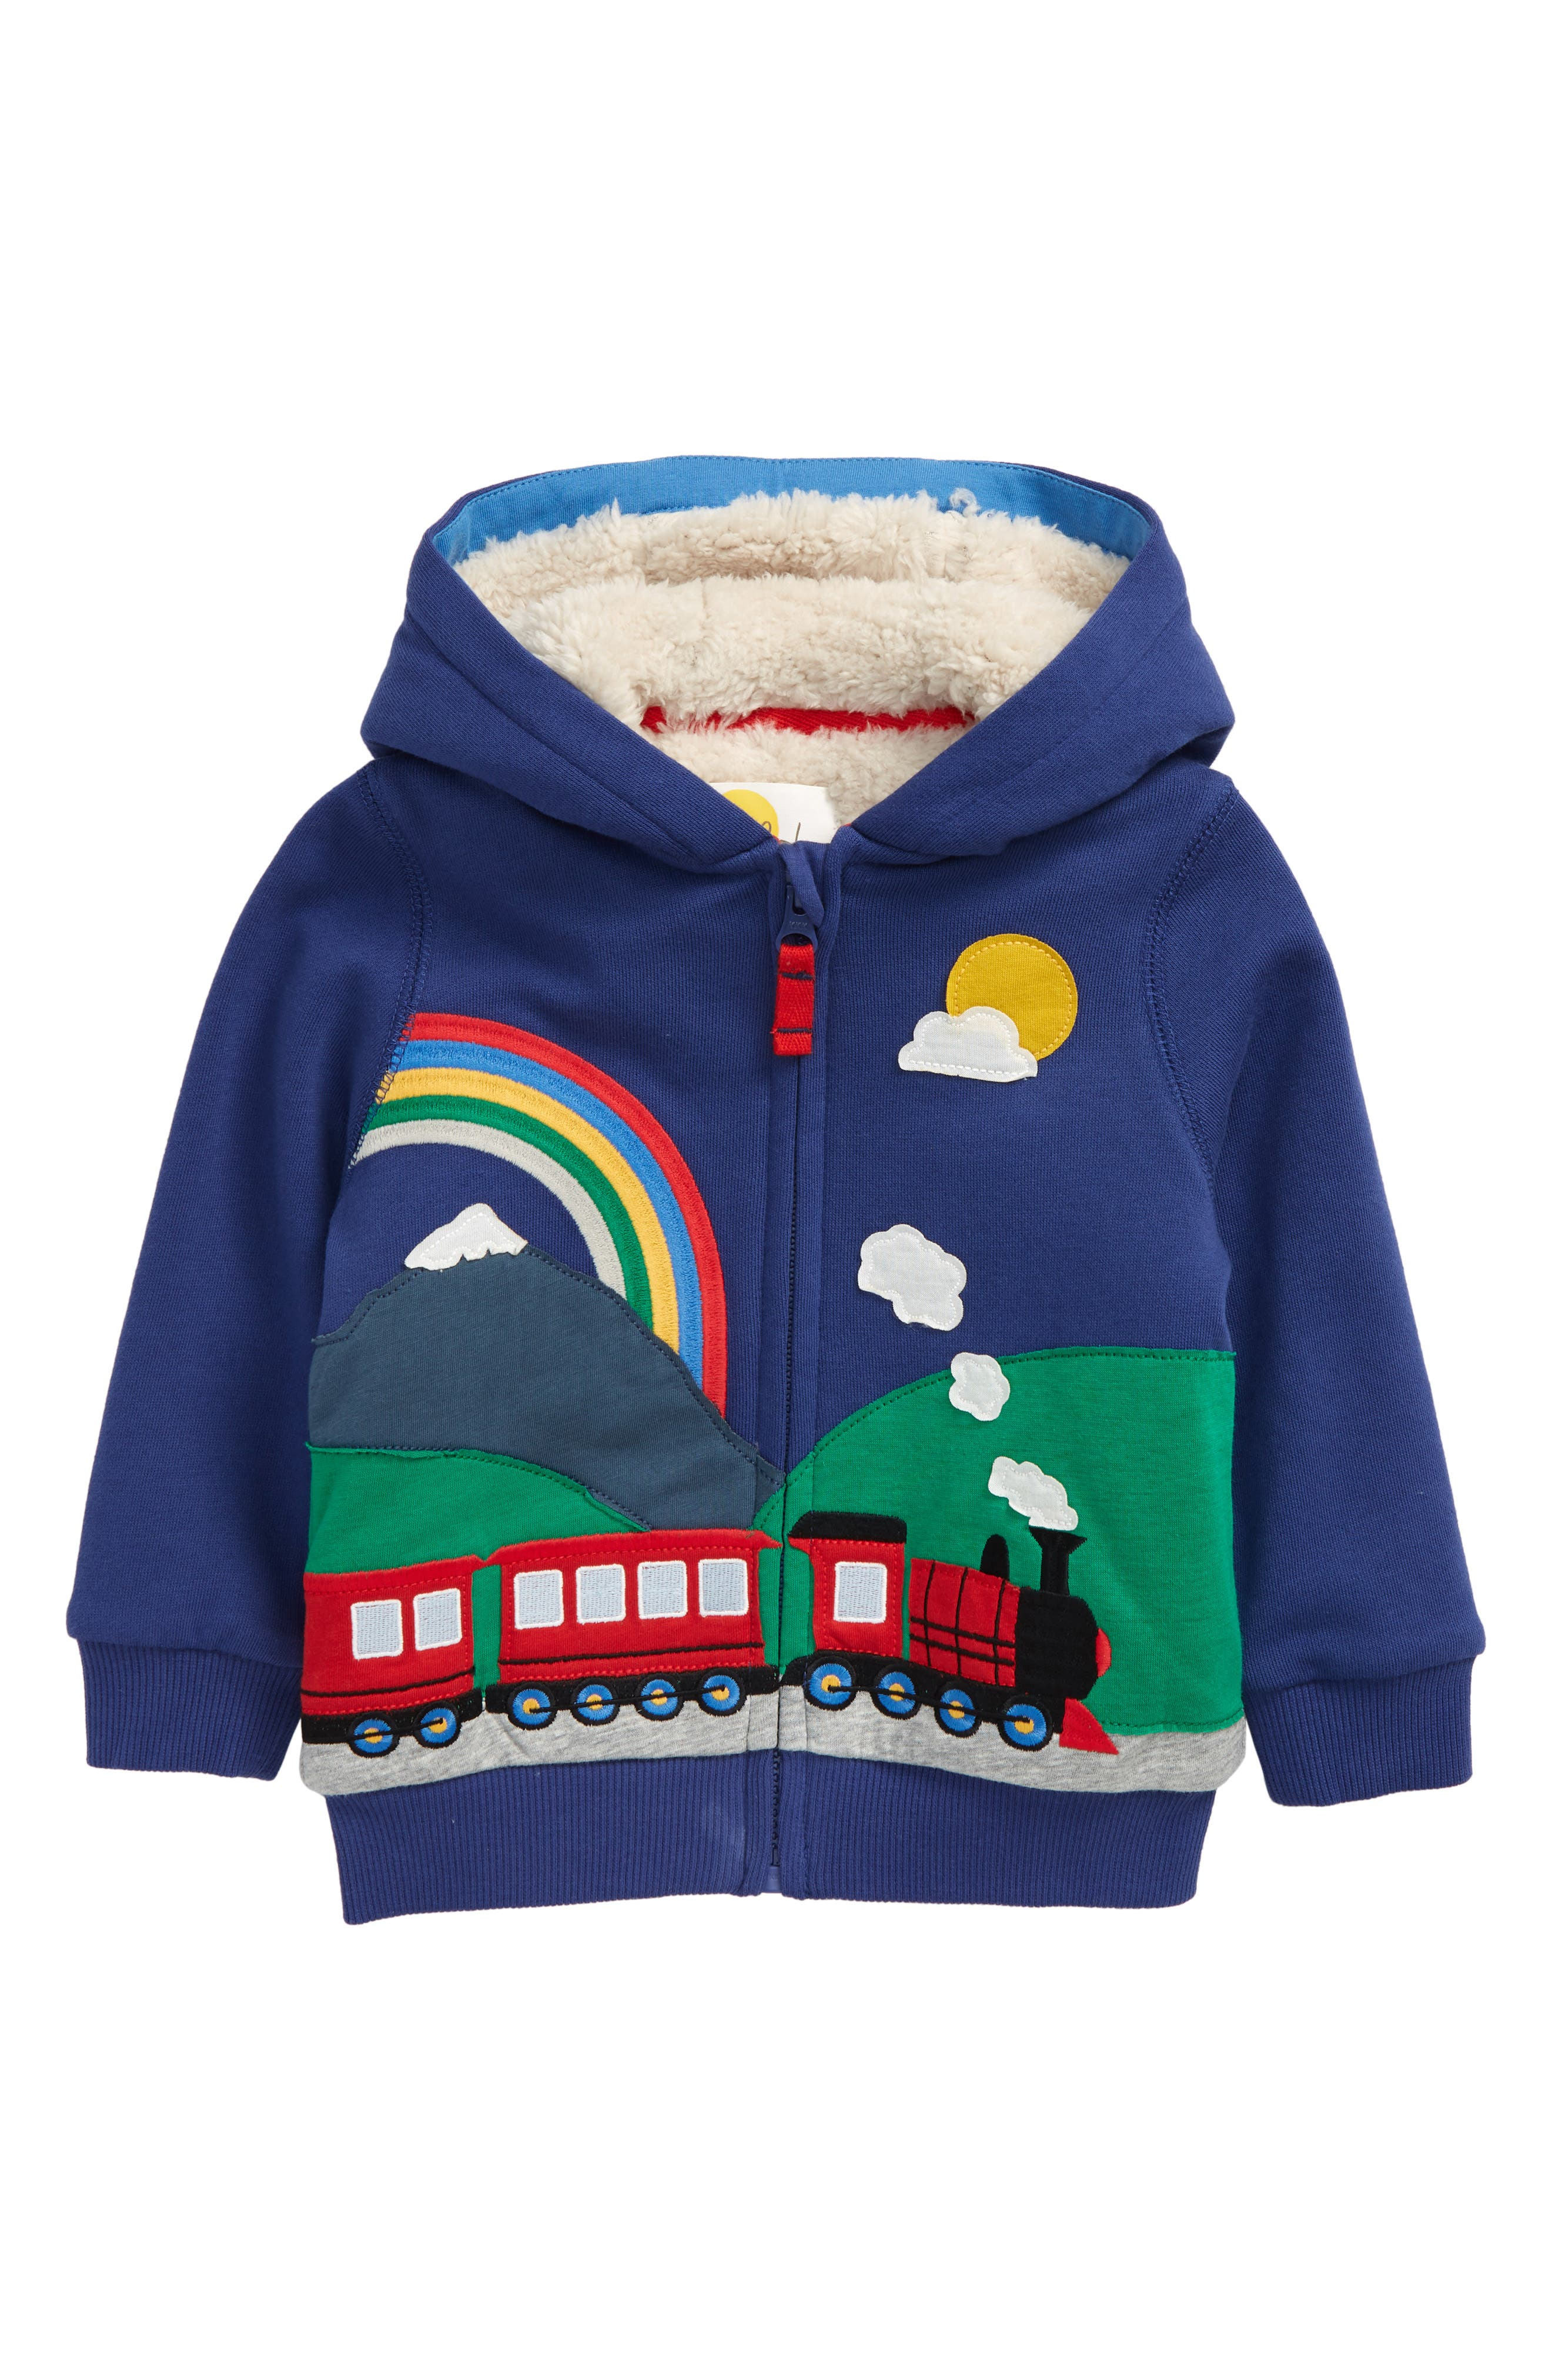 Plush high-pile fleece brings never-ending warmth and comfort to a full-zip hoodie decorated with darling patches and playful embroidery. Style Name: Mini Boden High-Pile Fleece Lined Hoodie (Baby). Style Number: 6104873. Available in stores.